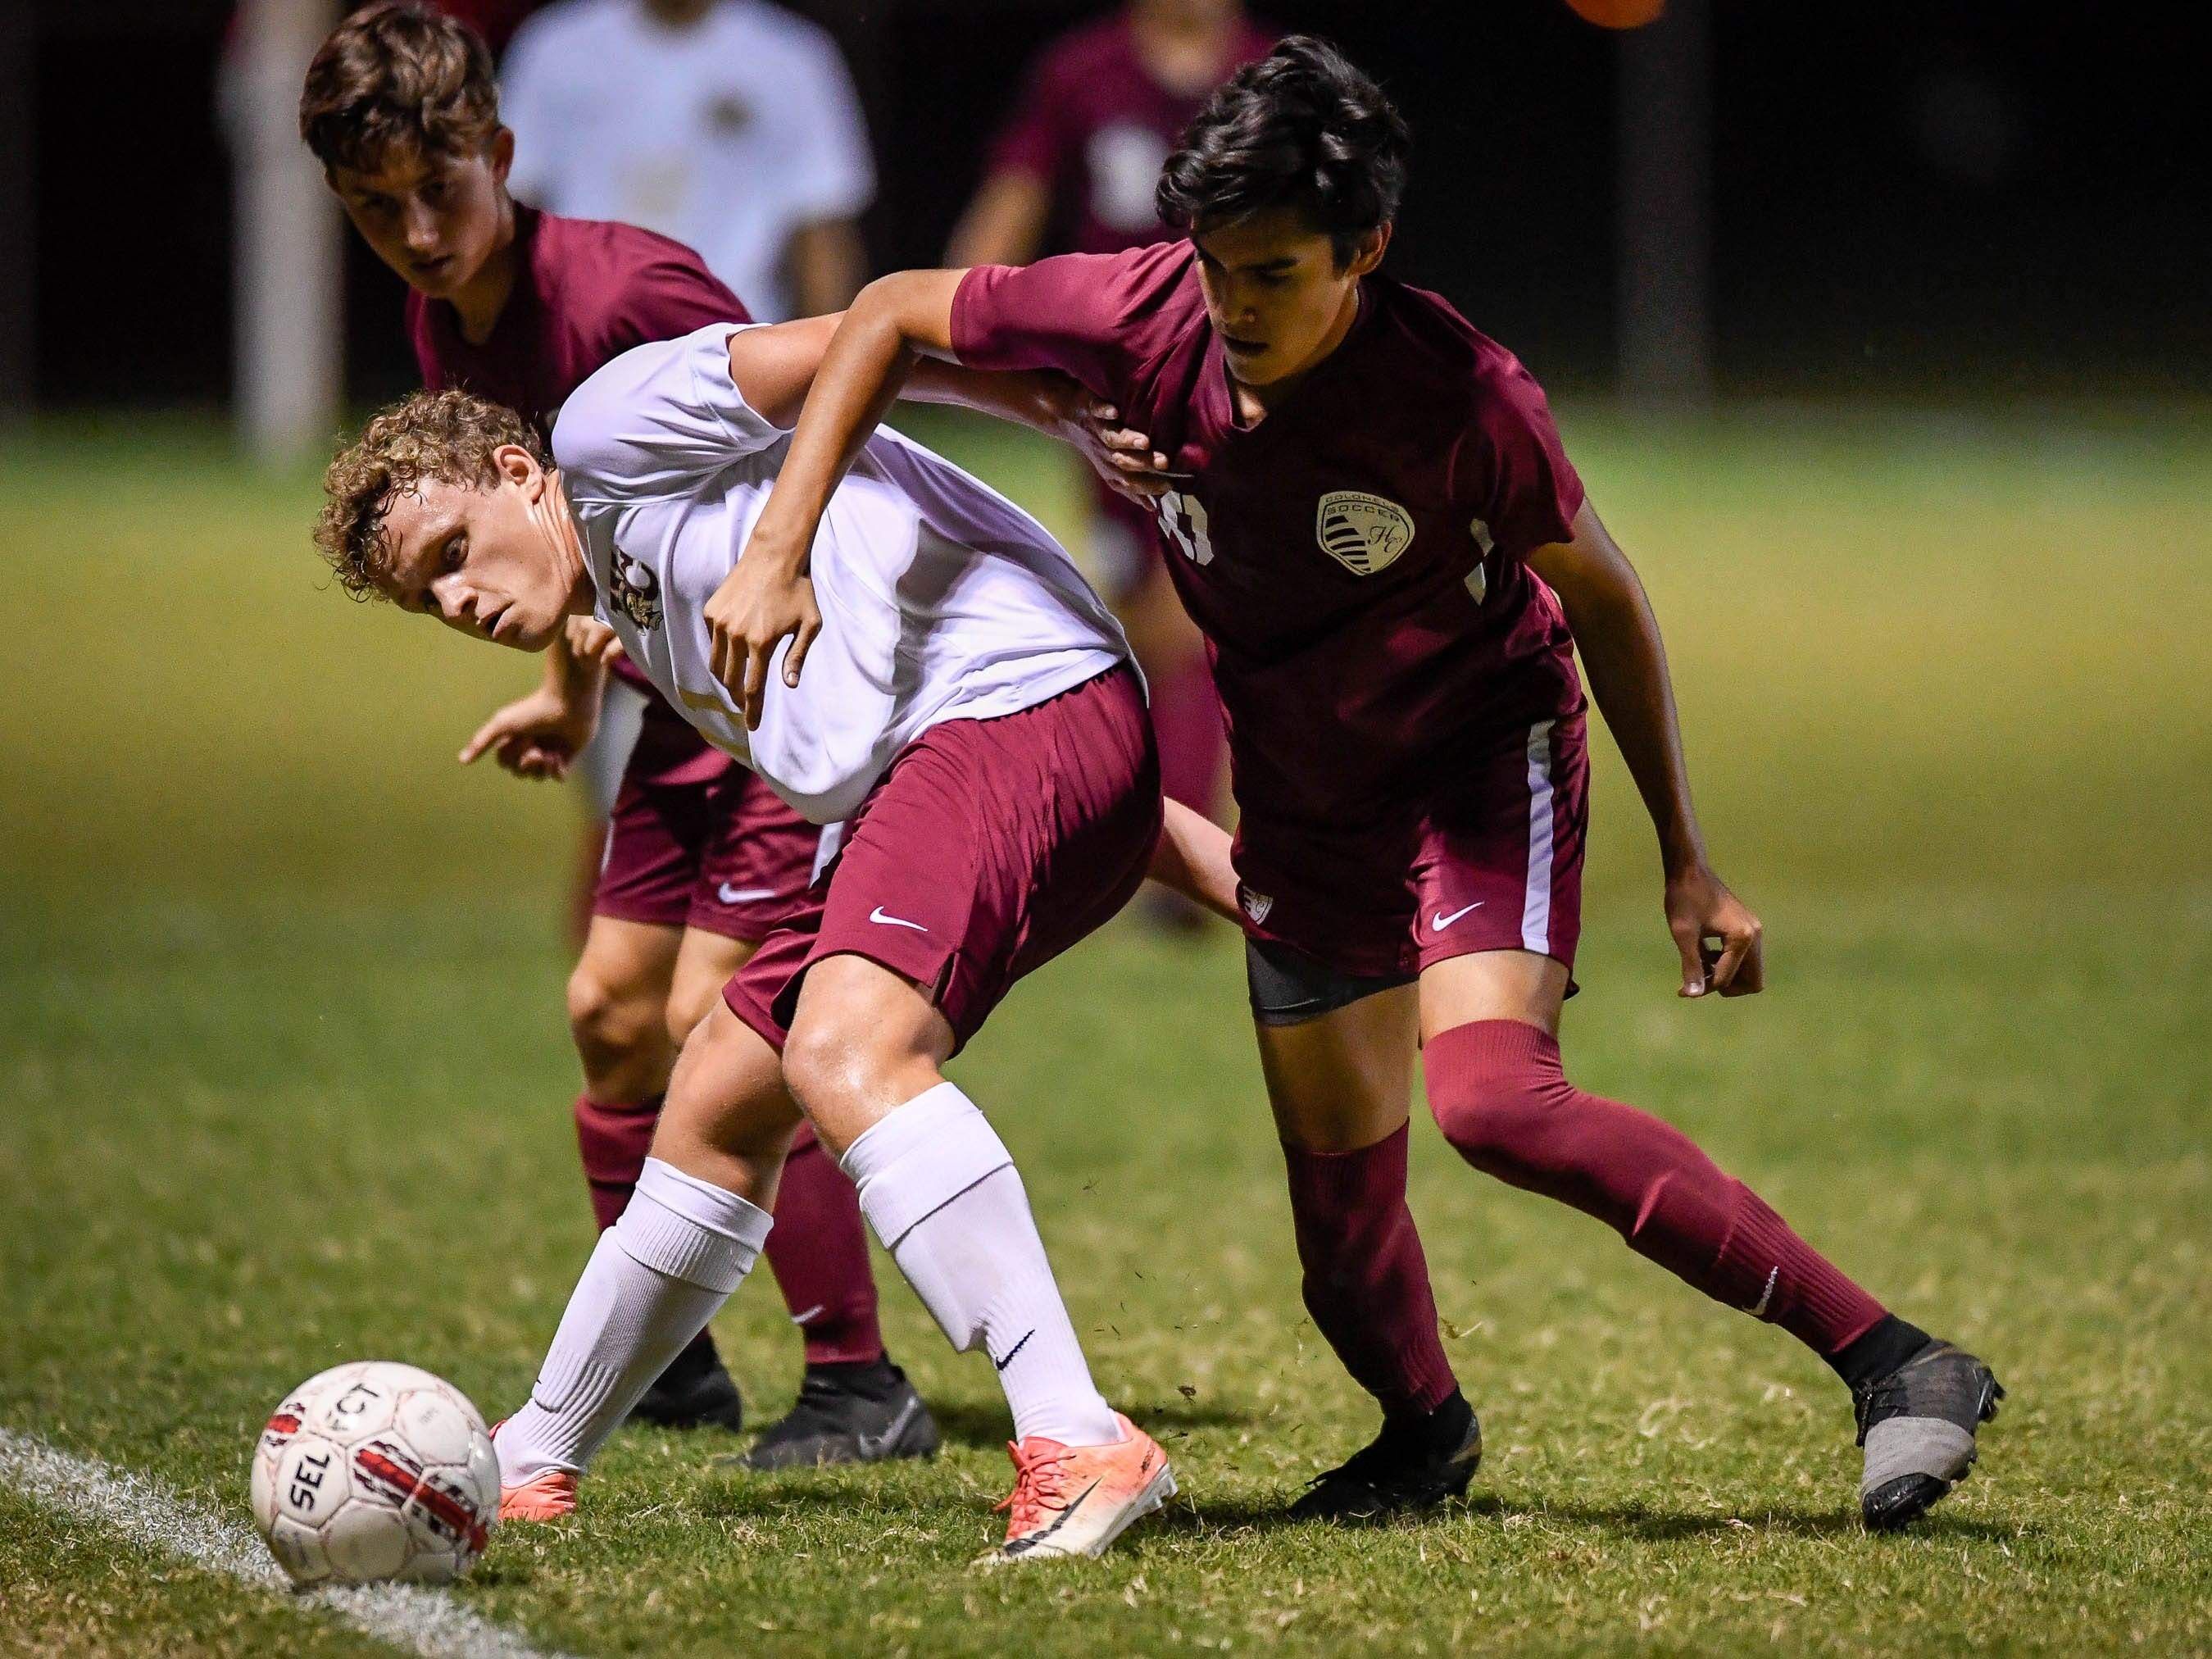 Webster's Joel McCormick (11)  and Henderson County's David Gonzalez (10) battle on the side line as the Henderson County Colonels play the Webster County Trojans in the Sixth District Soccer Tournament at Colonel Field Wednesday, October 10, 2018.